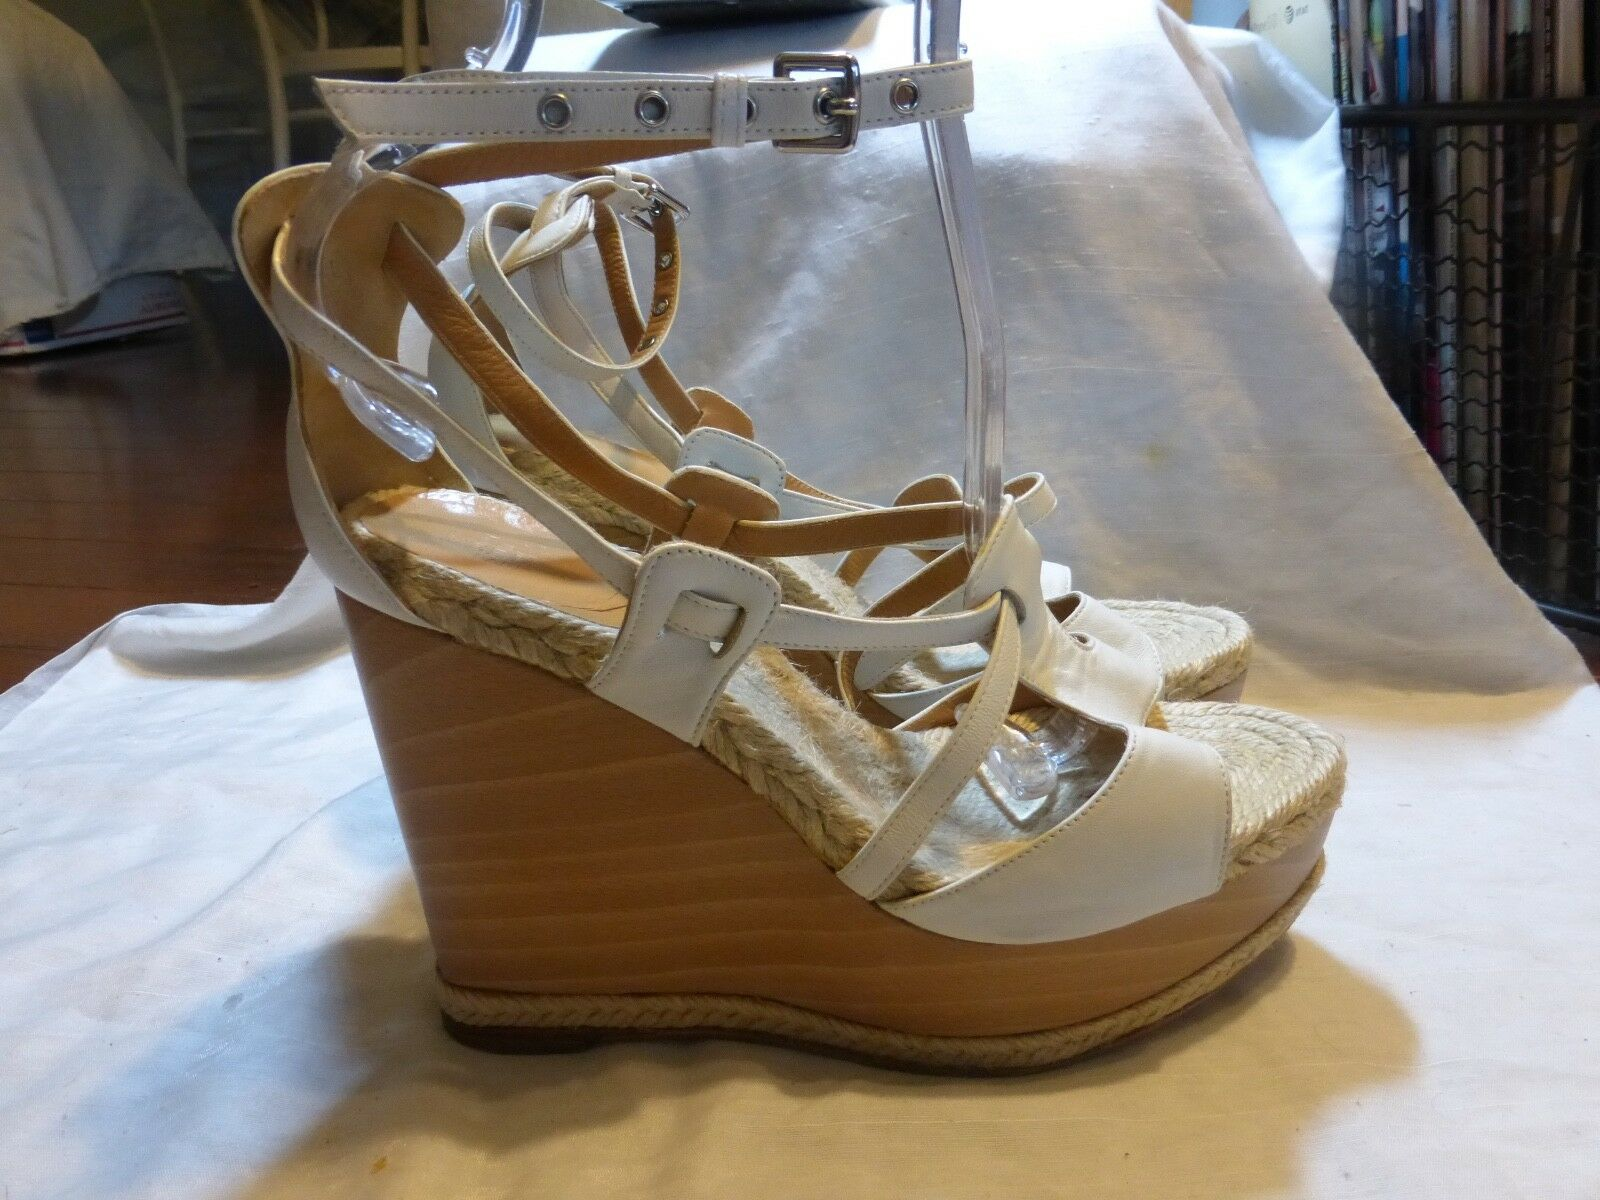 HERMES LEATHER WEDGES PLATFORMS SIZ 39-9  1300 ANKLE STRAP 10.25 L WHITE CLOGS